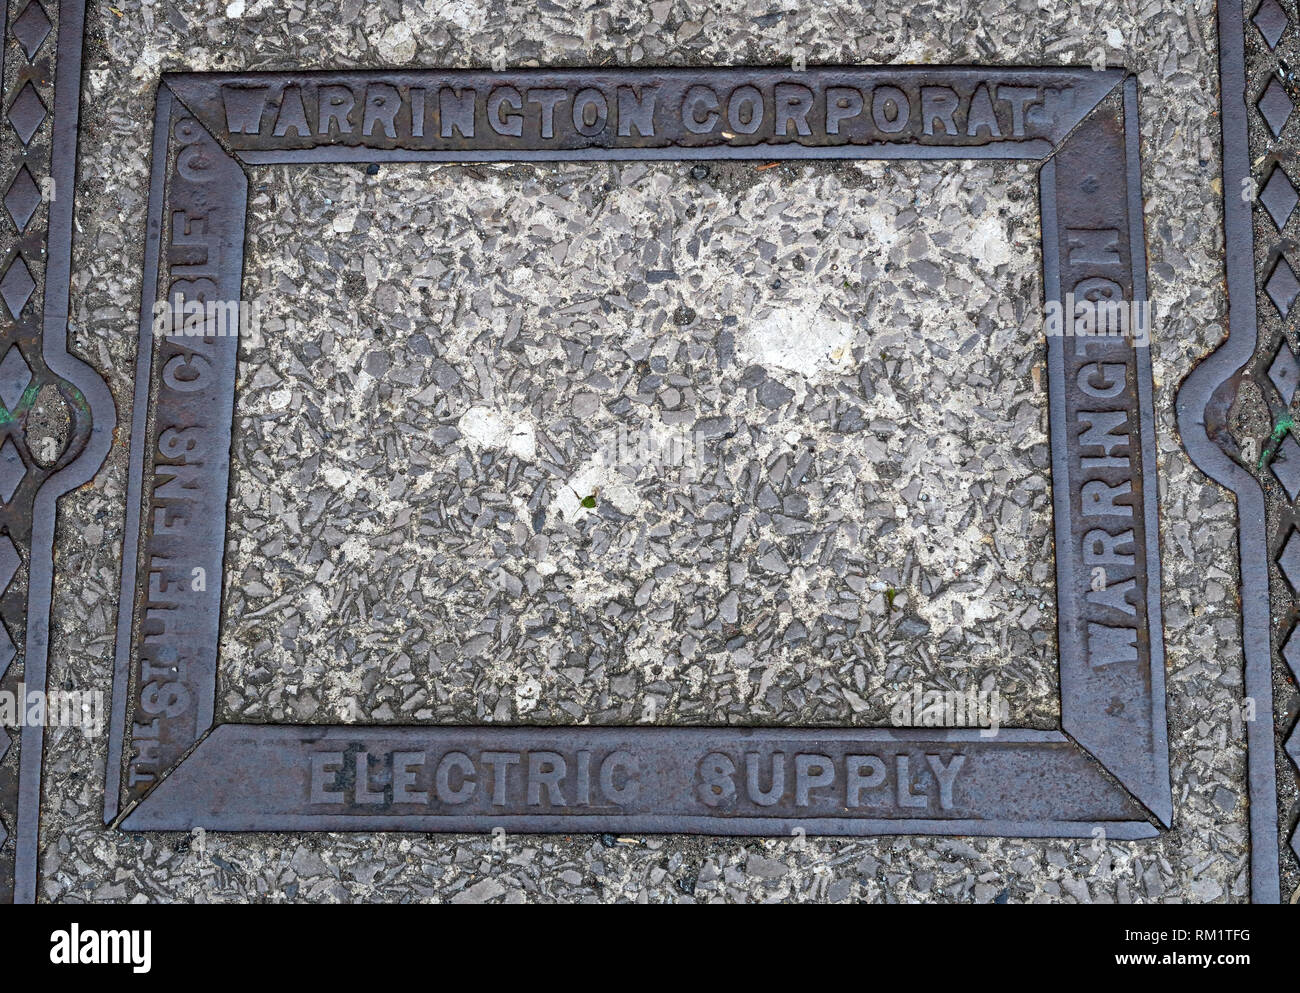 Grid Cover, Warrington Corporation, Electric Supply, St Helens Cable Company Stock Photo